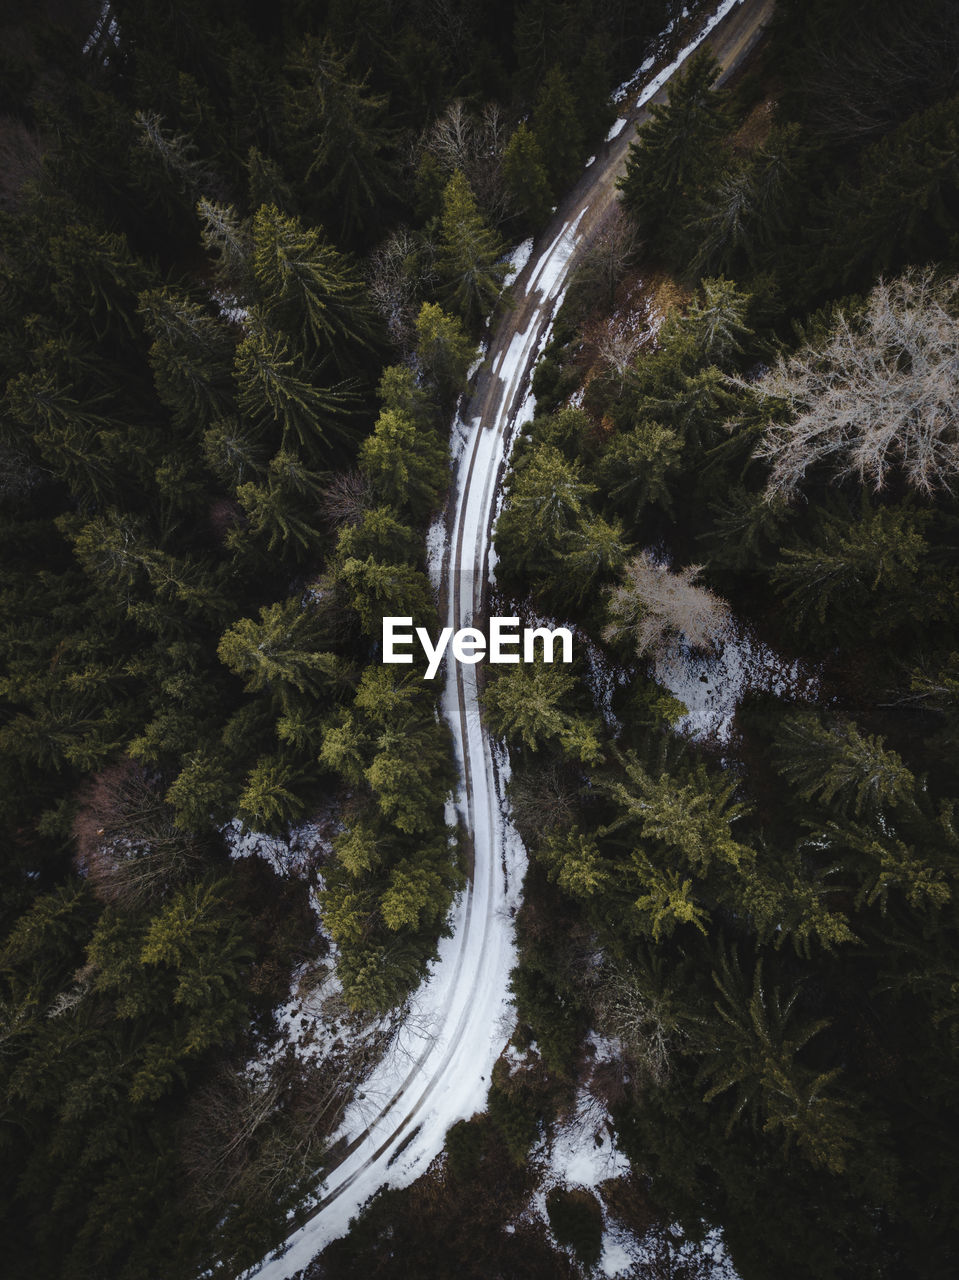 Aerial view of snow covered road amidst trees in forest